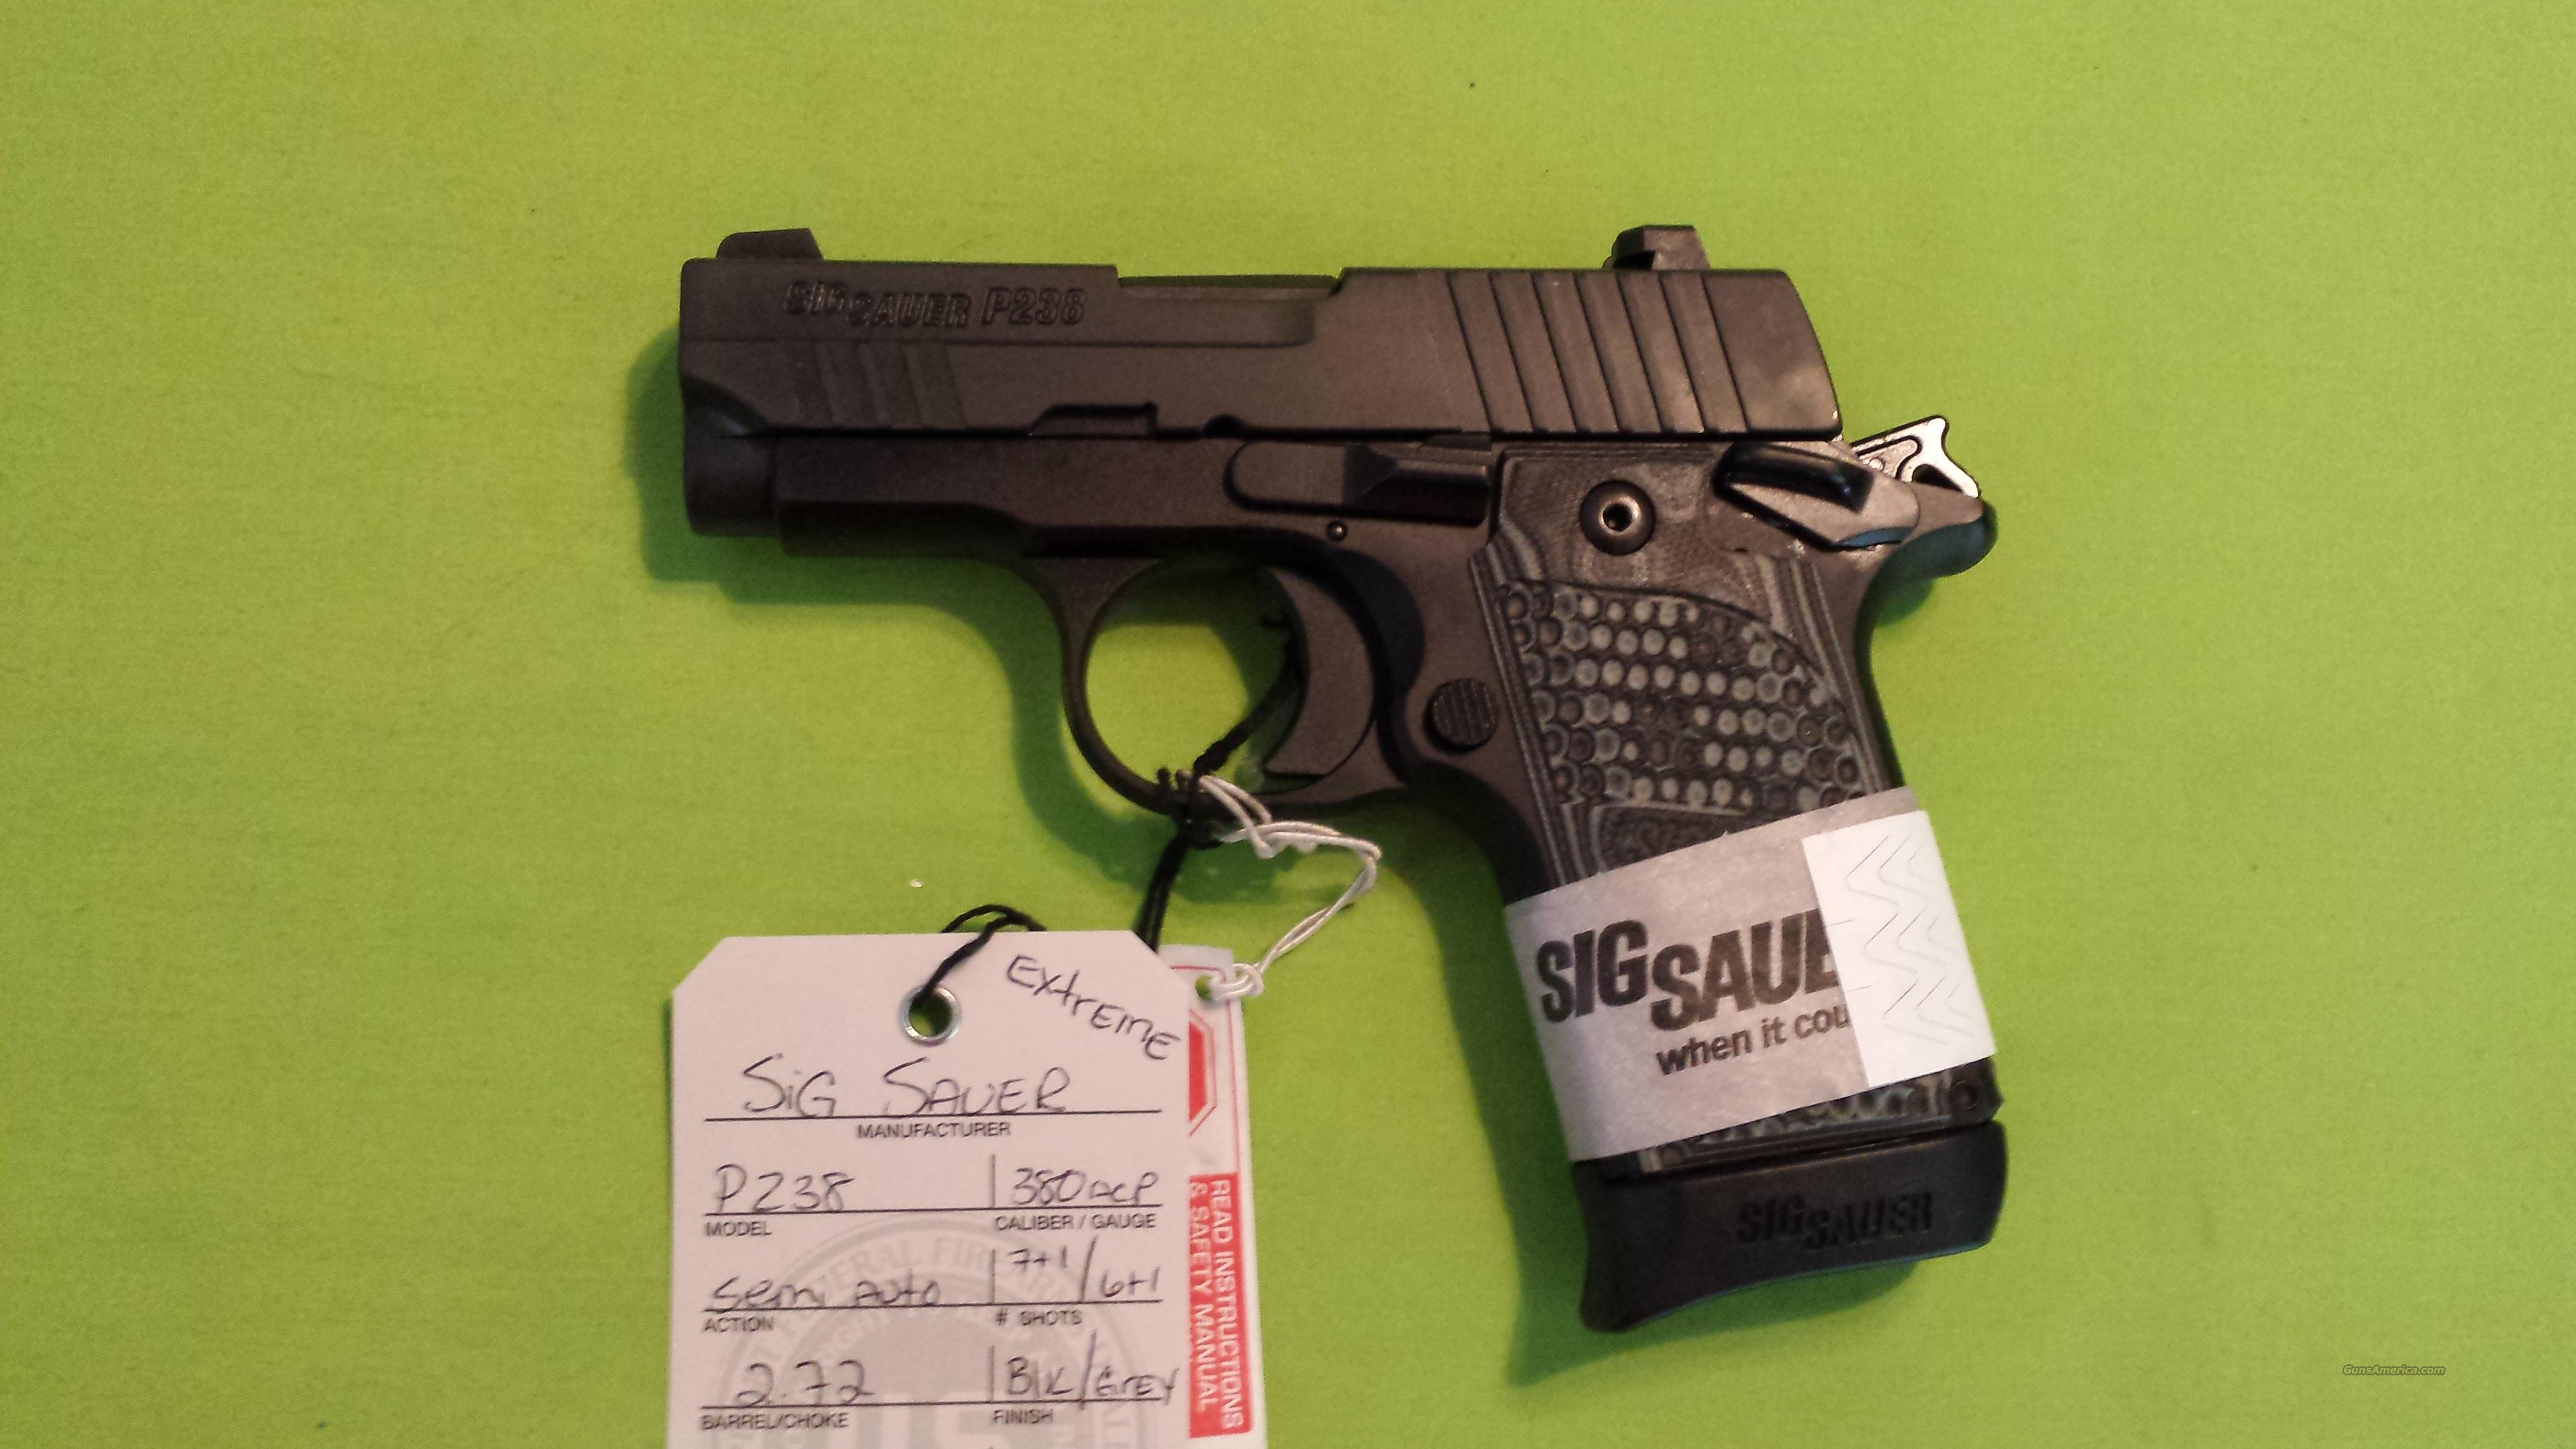 SIG SAUER P238 380 ACP EXTREME 7/6 RD MAGS P 238  Guns > Pistols > Sig - Sauer/Sigarms Pistols > P238